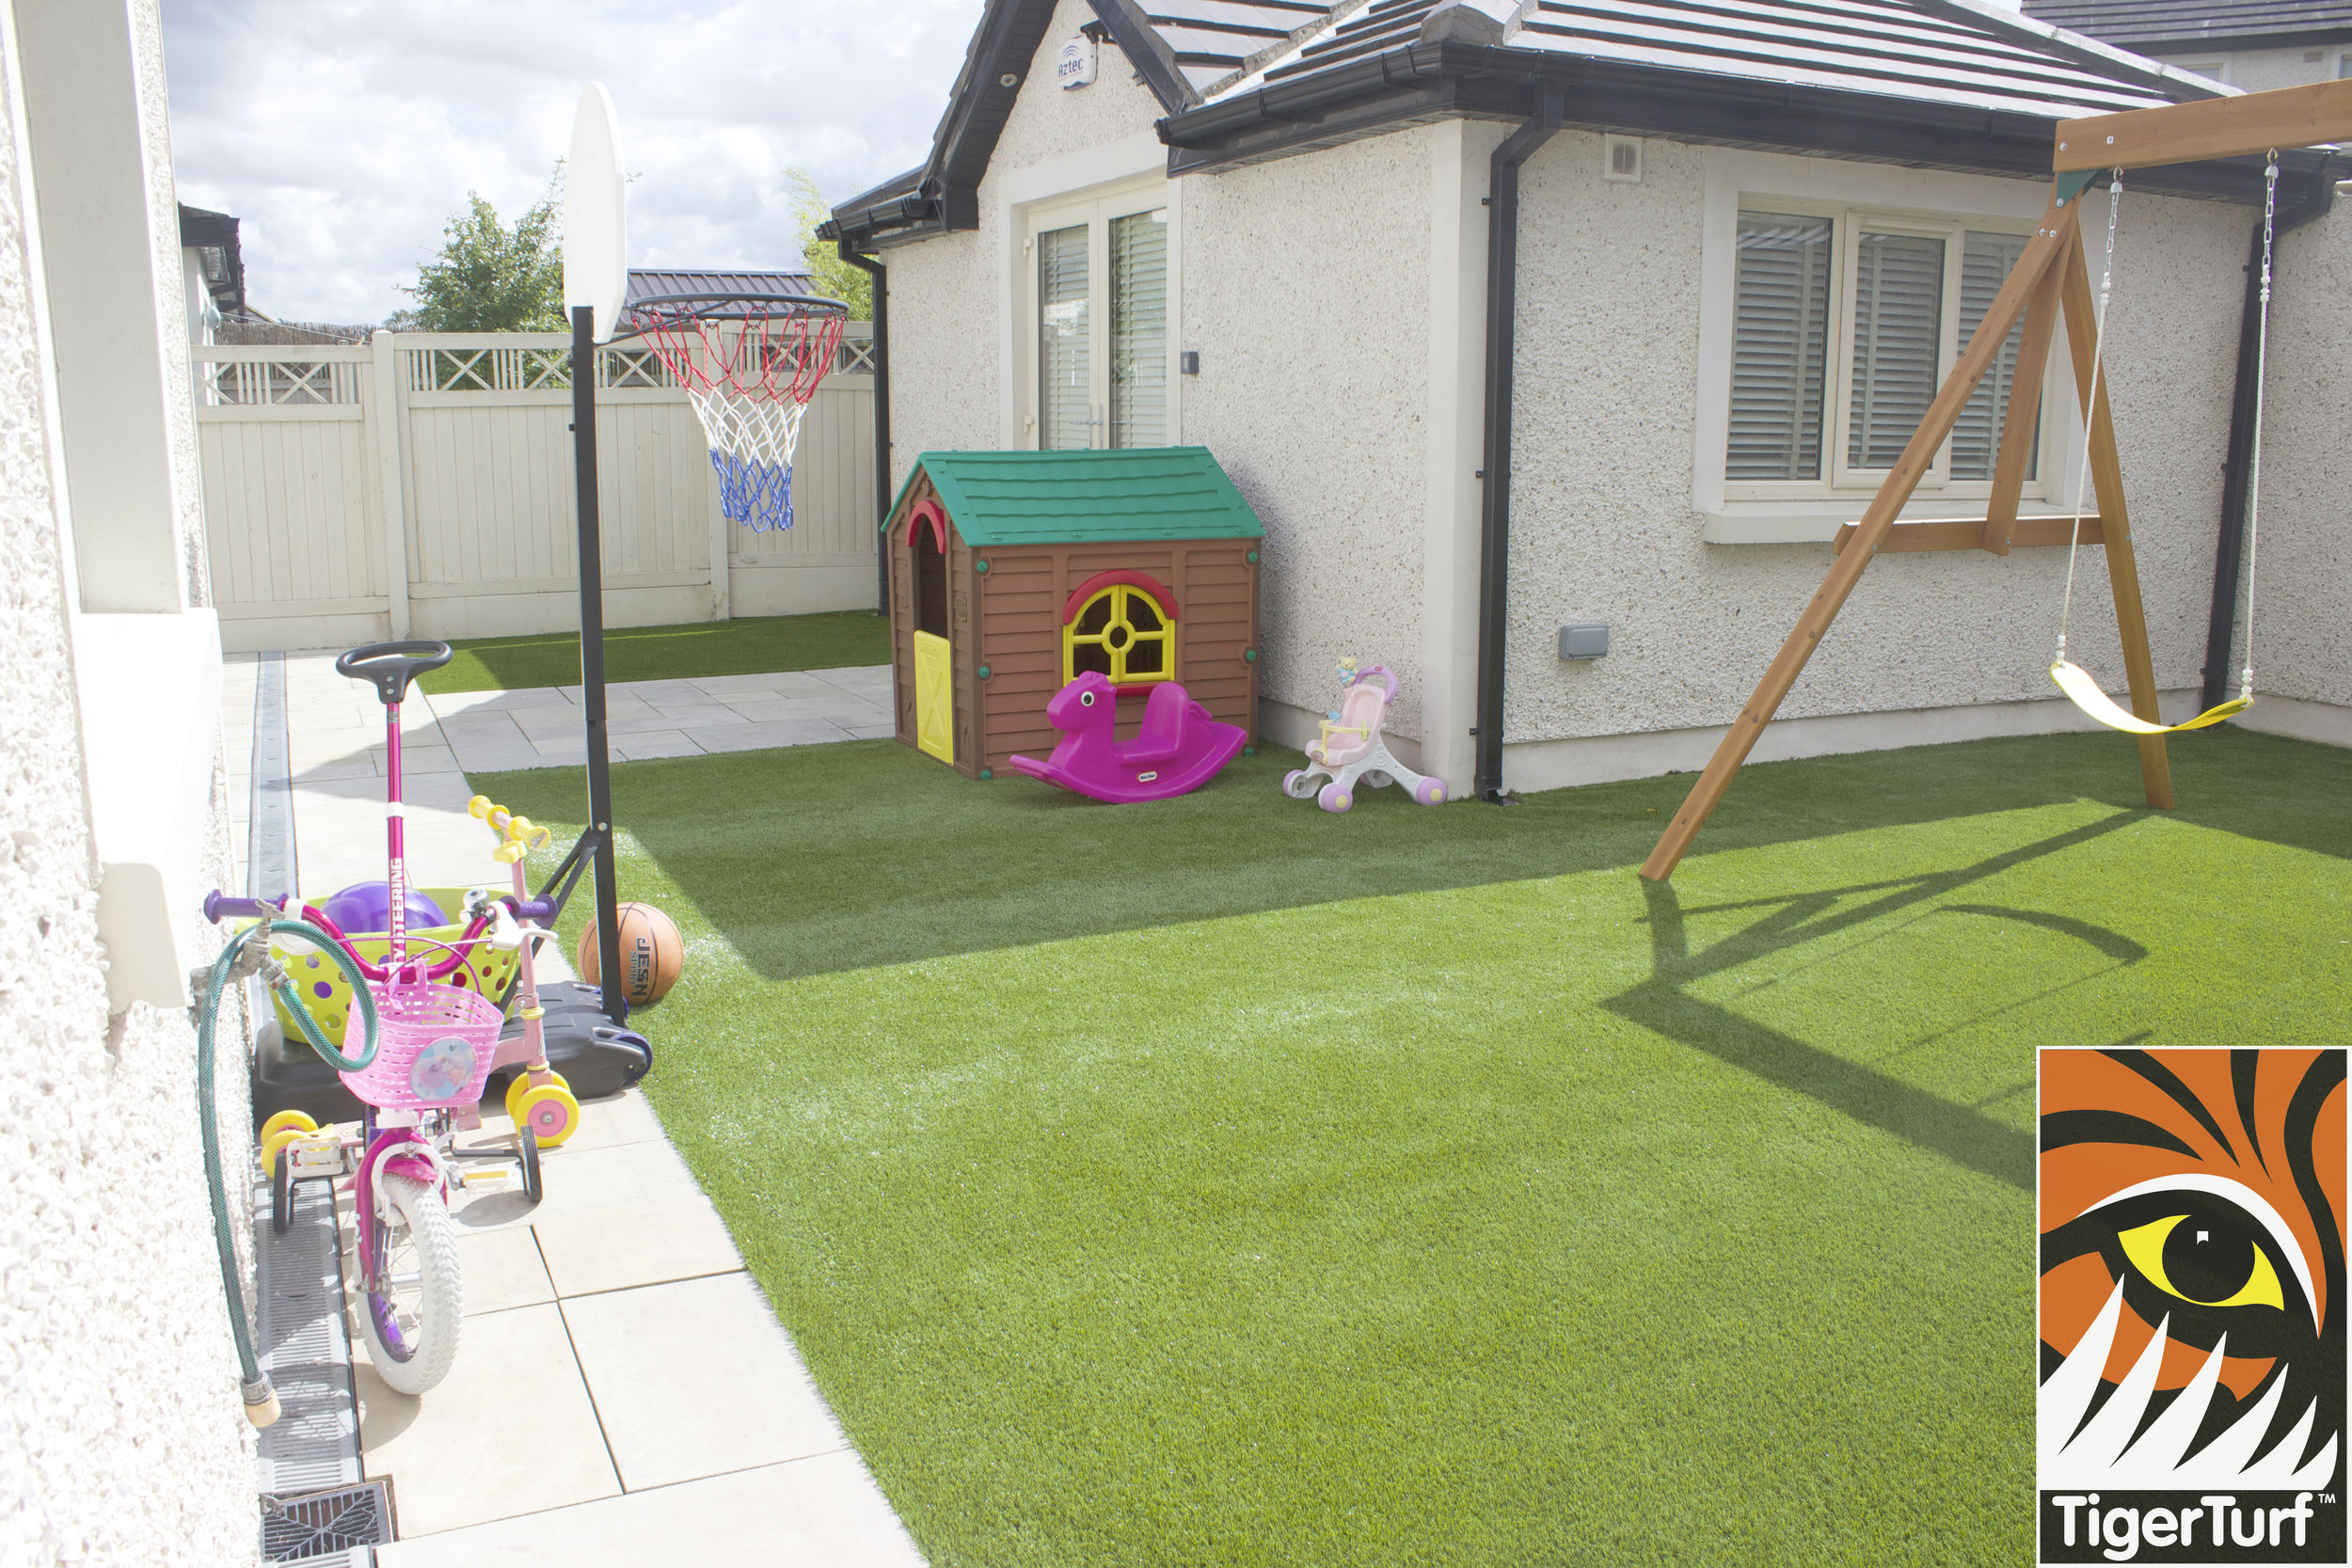 Family garden with green lawn